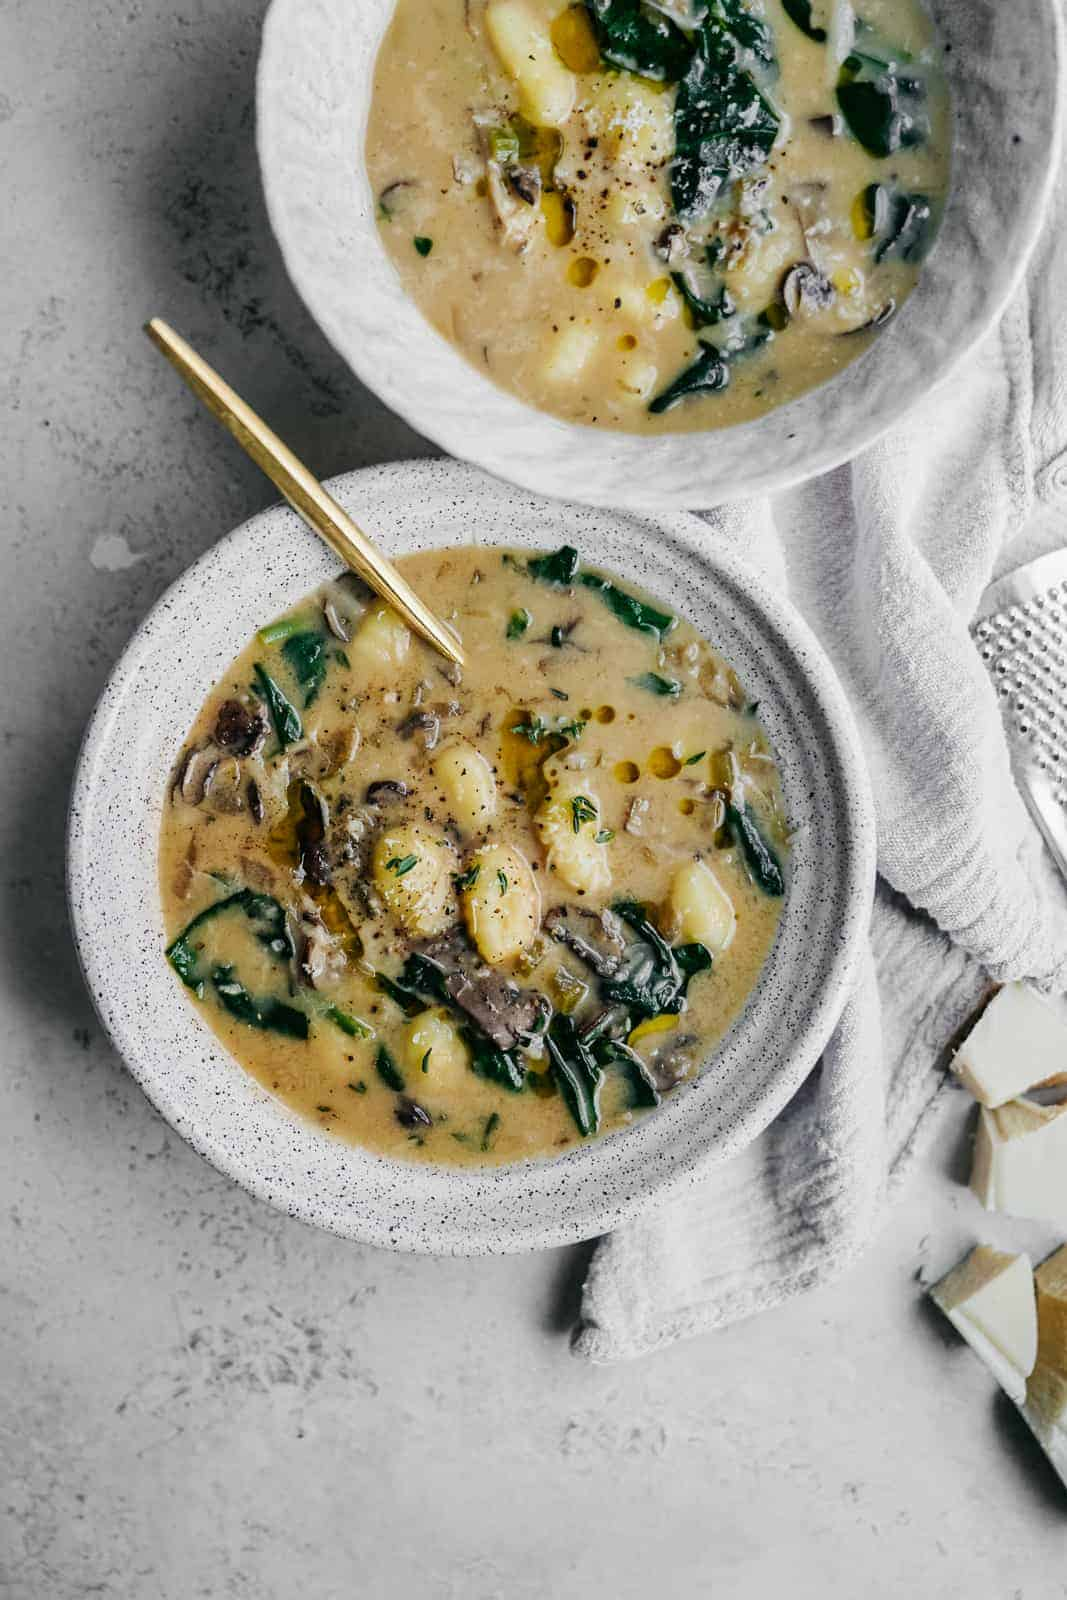 Spinach & Gnocchi Soup in a bowl with a spoon. A great soup idea for using gnocchi.